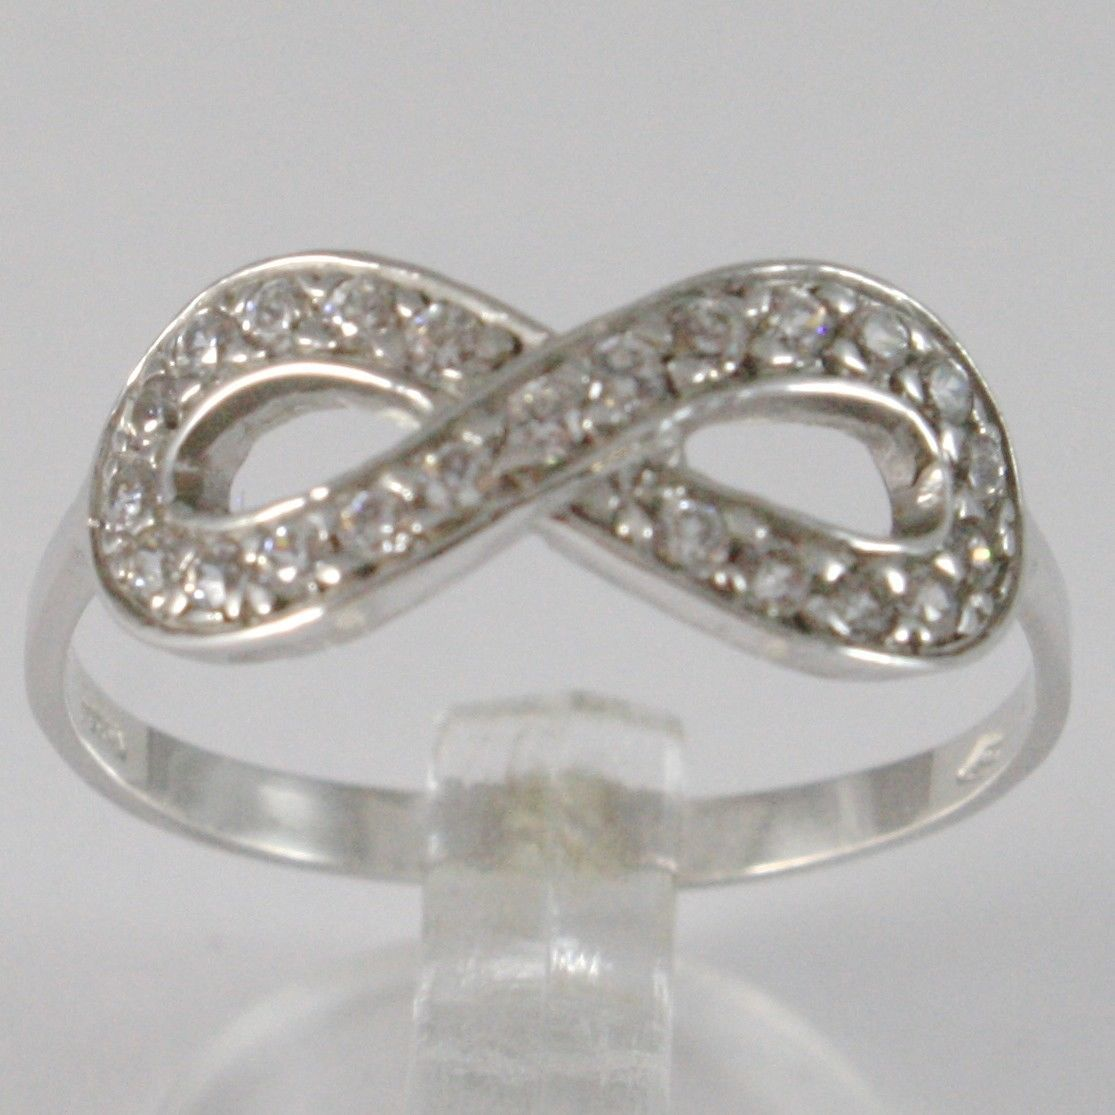 ANILLO DE ORO BLANCO 750 18 CT, SÍMBOLO INFINITO CON ZIRCONIA, MADE IN ITALY